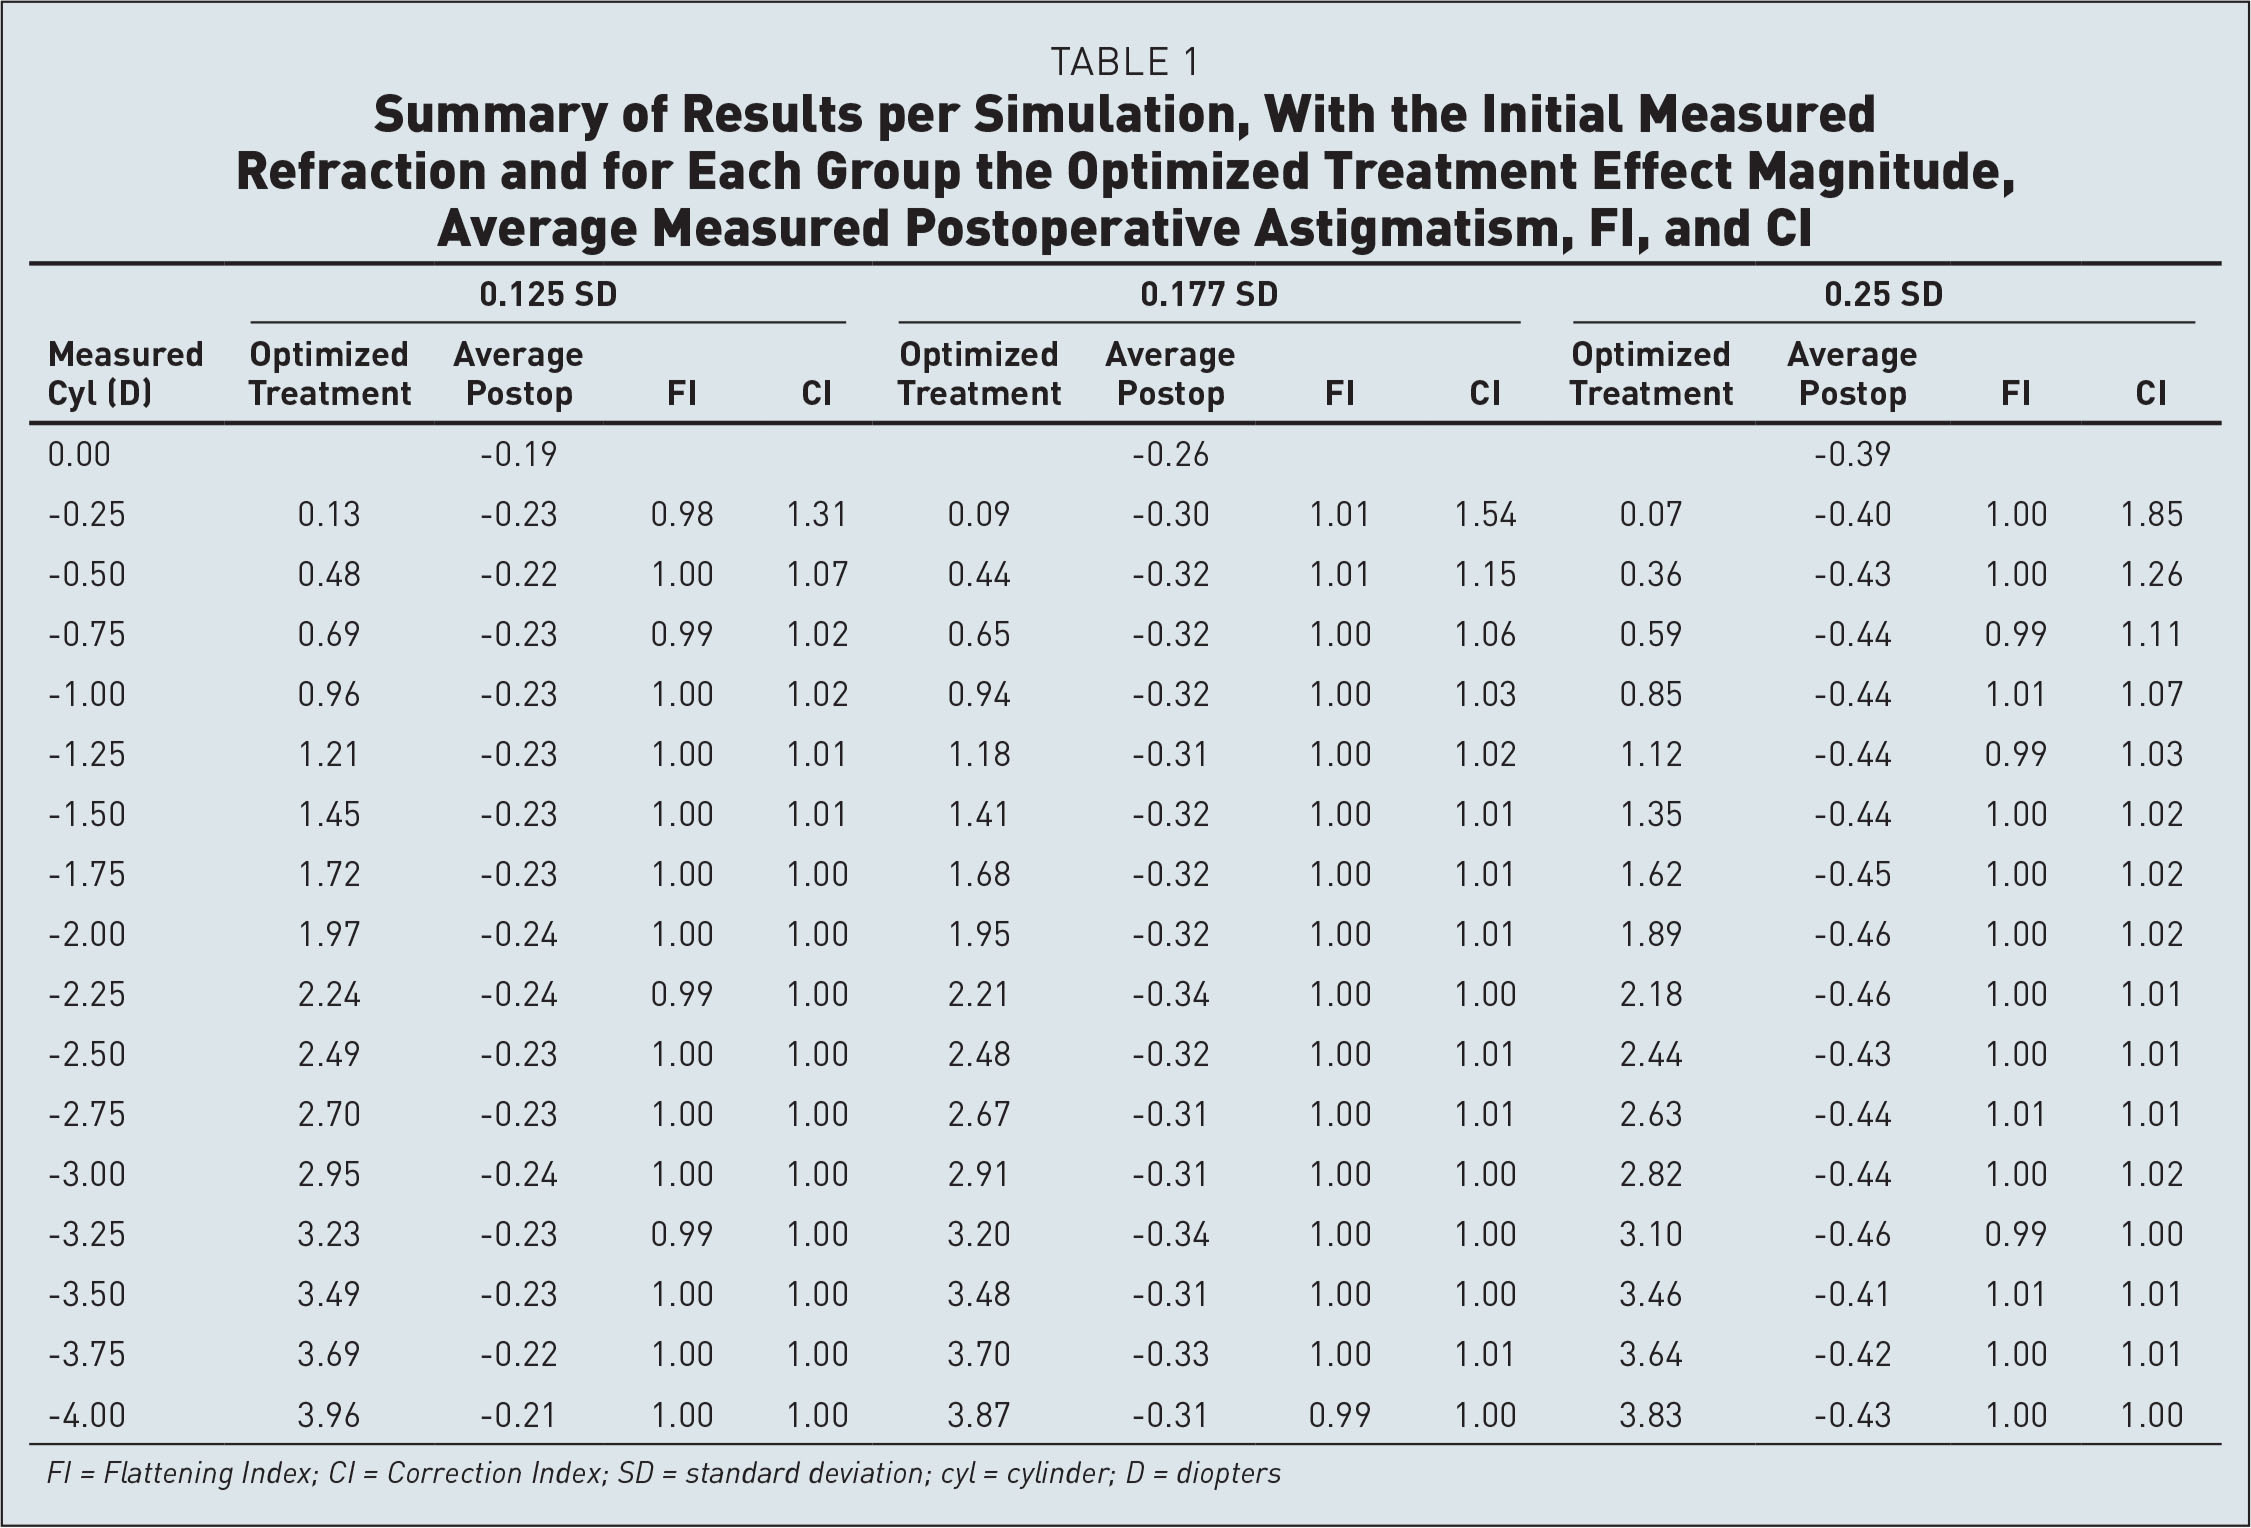 Summary of Results per Simulation, With the Initial Measured Refraction and for Each Group the Optimized Treatment Effect Magnitude, Average Measured Postoperative Astigmatism, FI, and CI